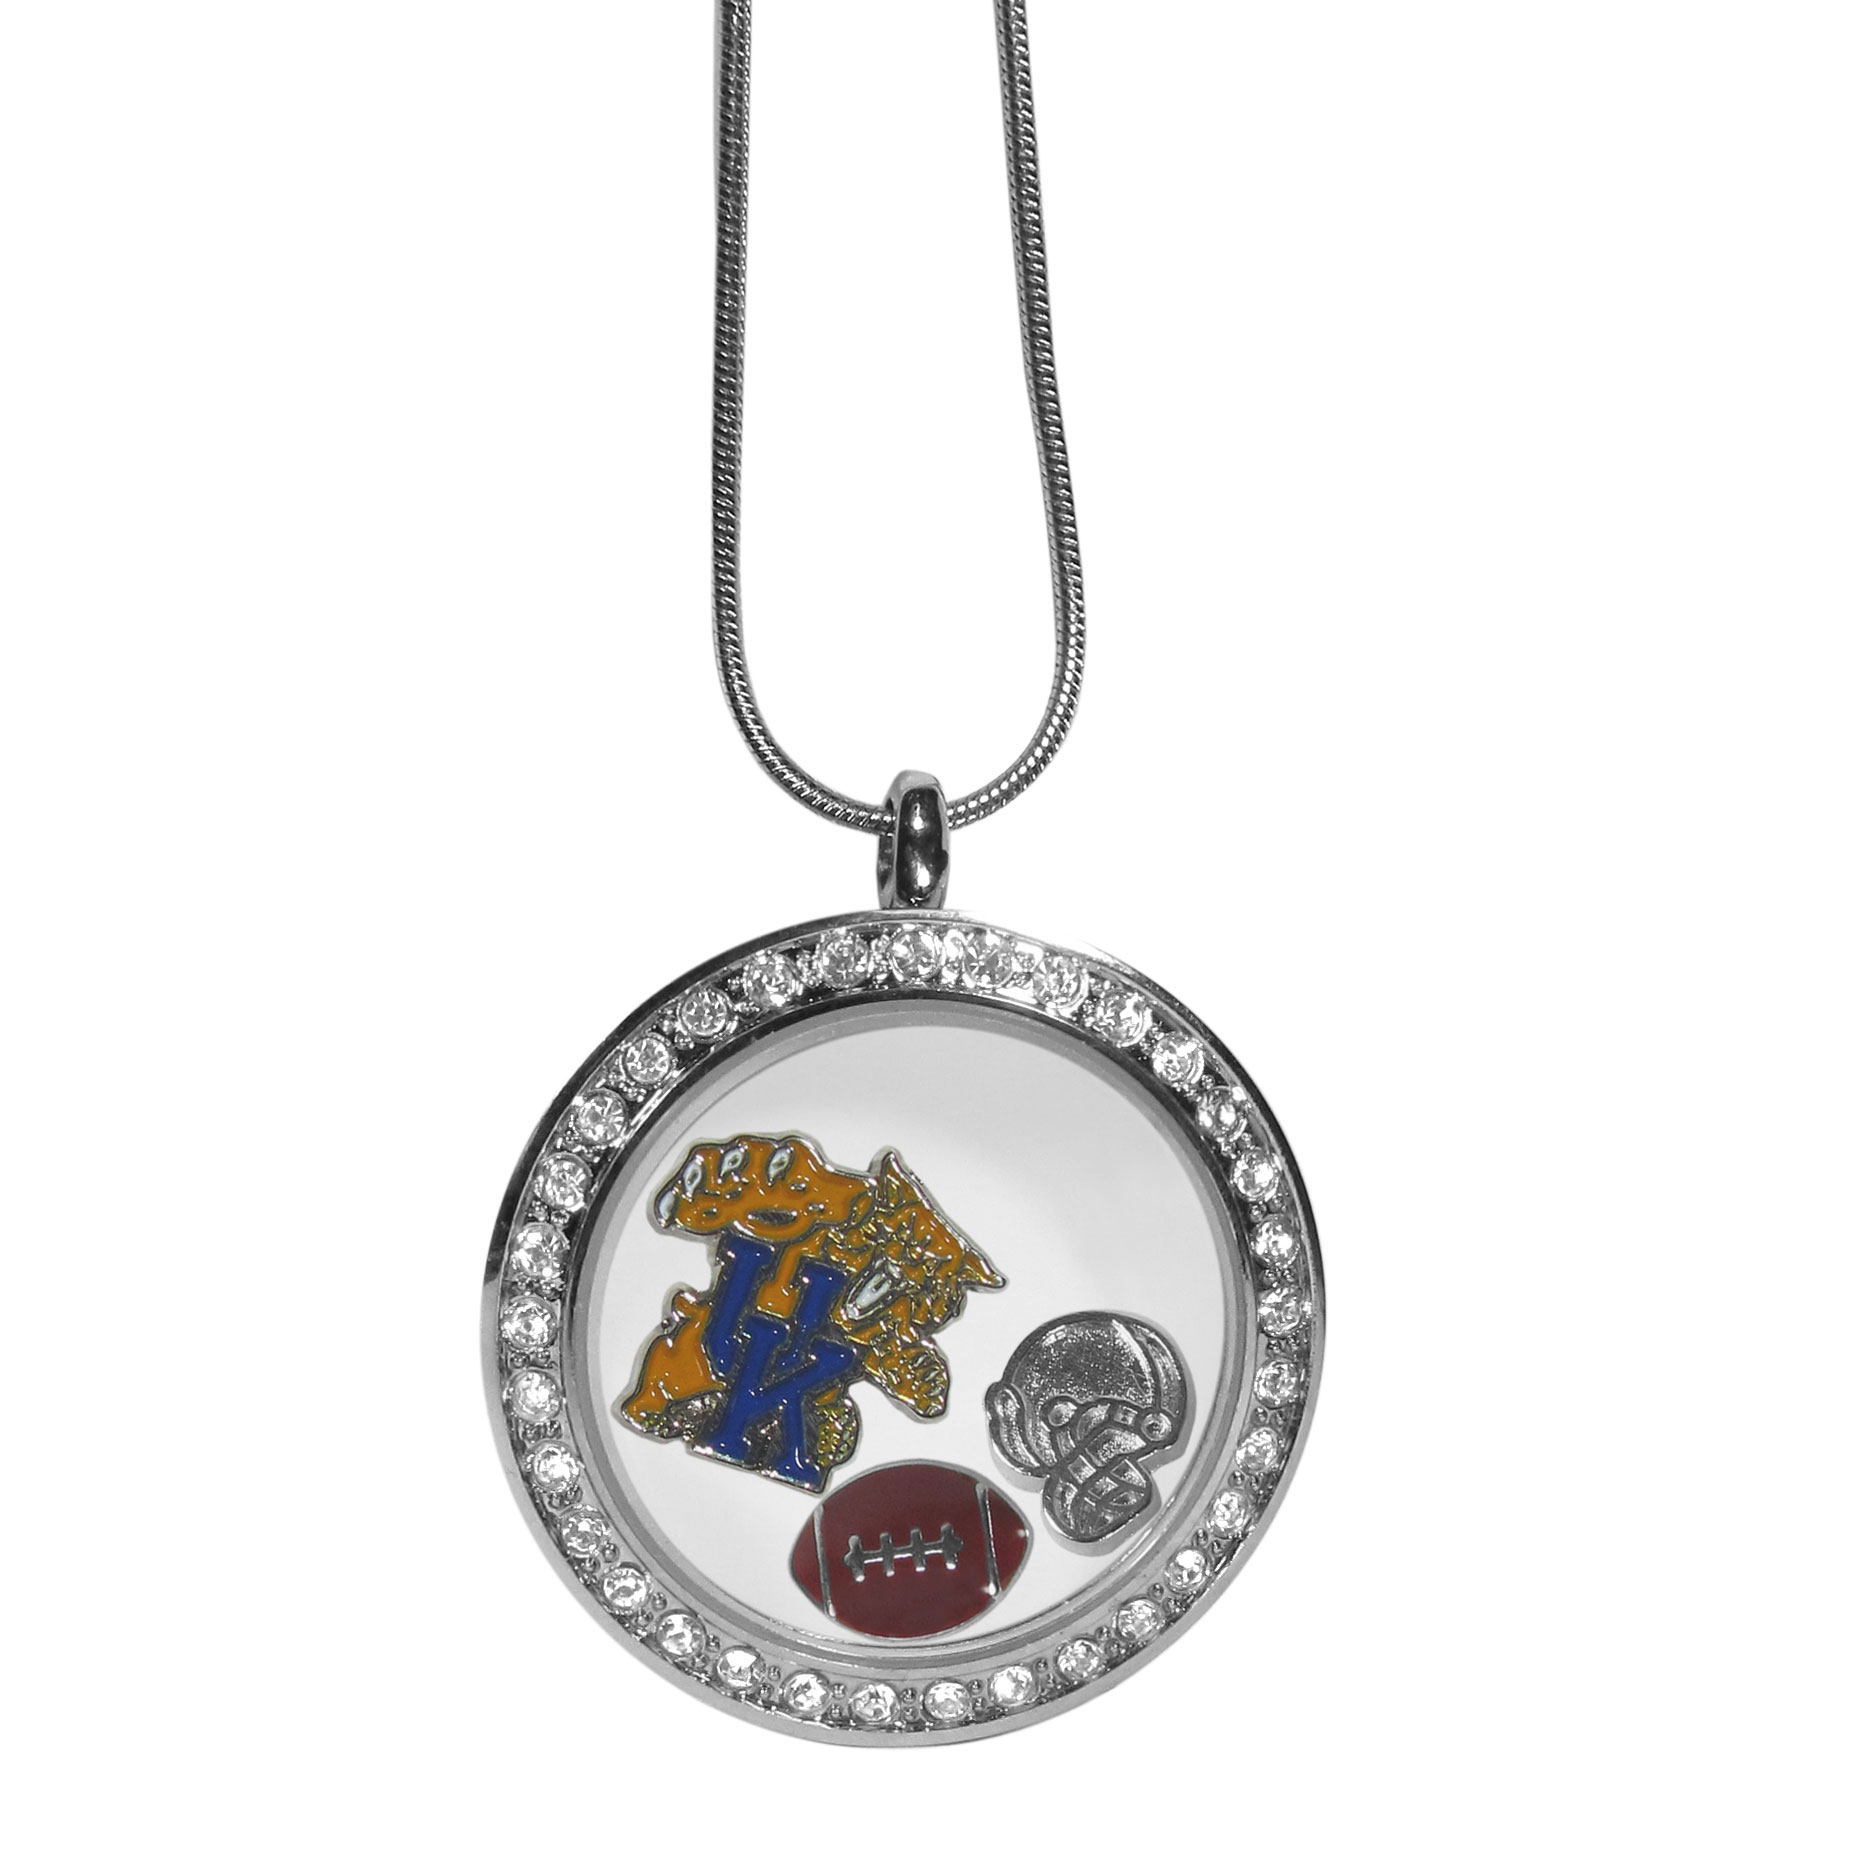 Kentucky Wildcats Locket Necklace - We have taken the classic floating charm locket and combined with licensed sports charms to create a must have fan necklace. The necklace comes with 3 charms; 1 Kentucky Wildcats charm, one football charm and one helmet charm. The charms float in a beautiful locket that has a strong magnetic closure with a rhinestone border. The locket comes on an 18 inch snake chain with 2 inch extender.